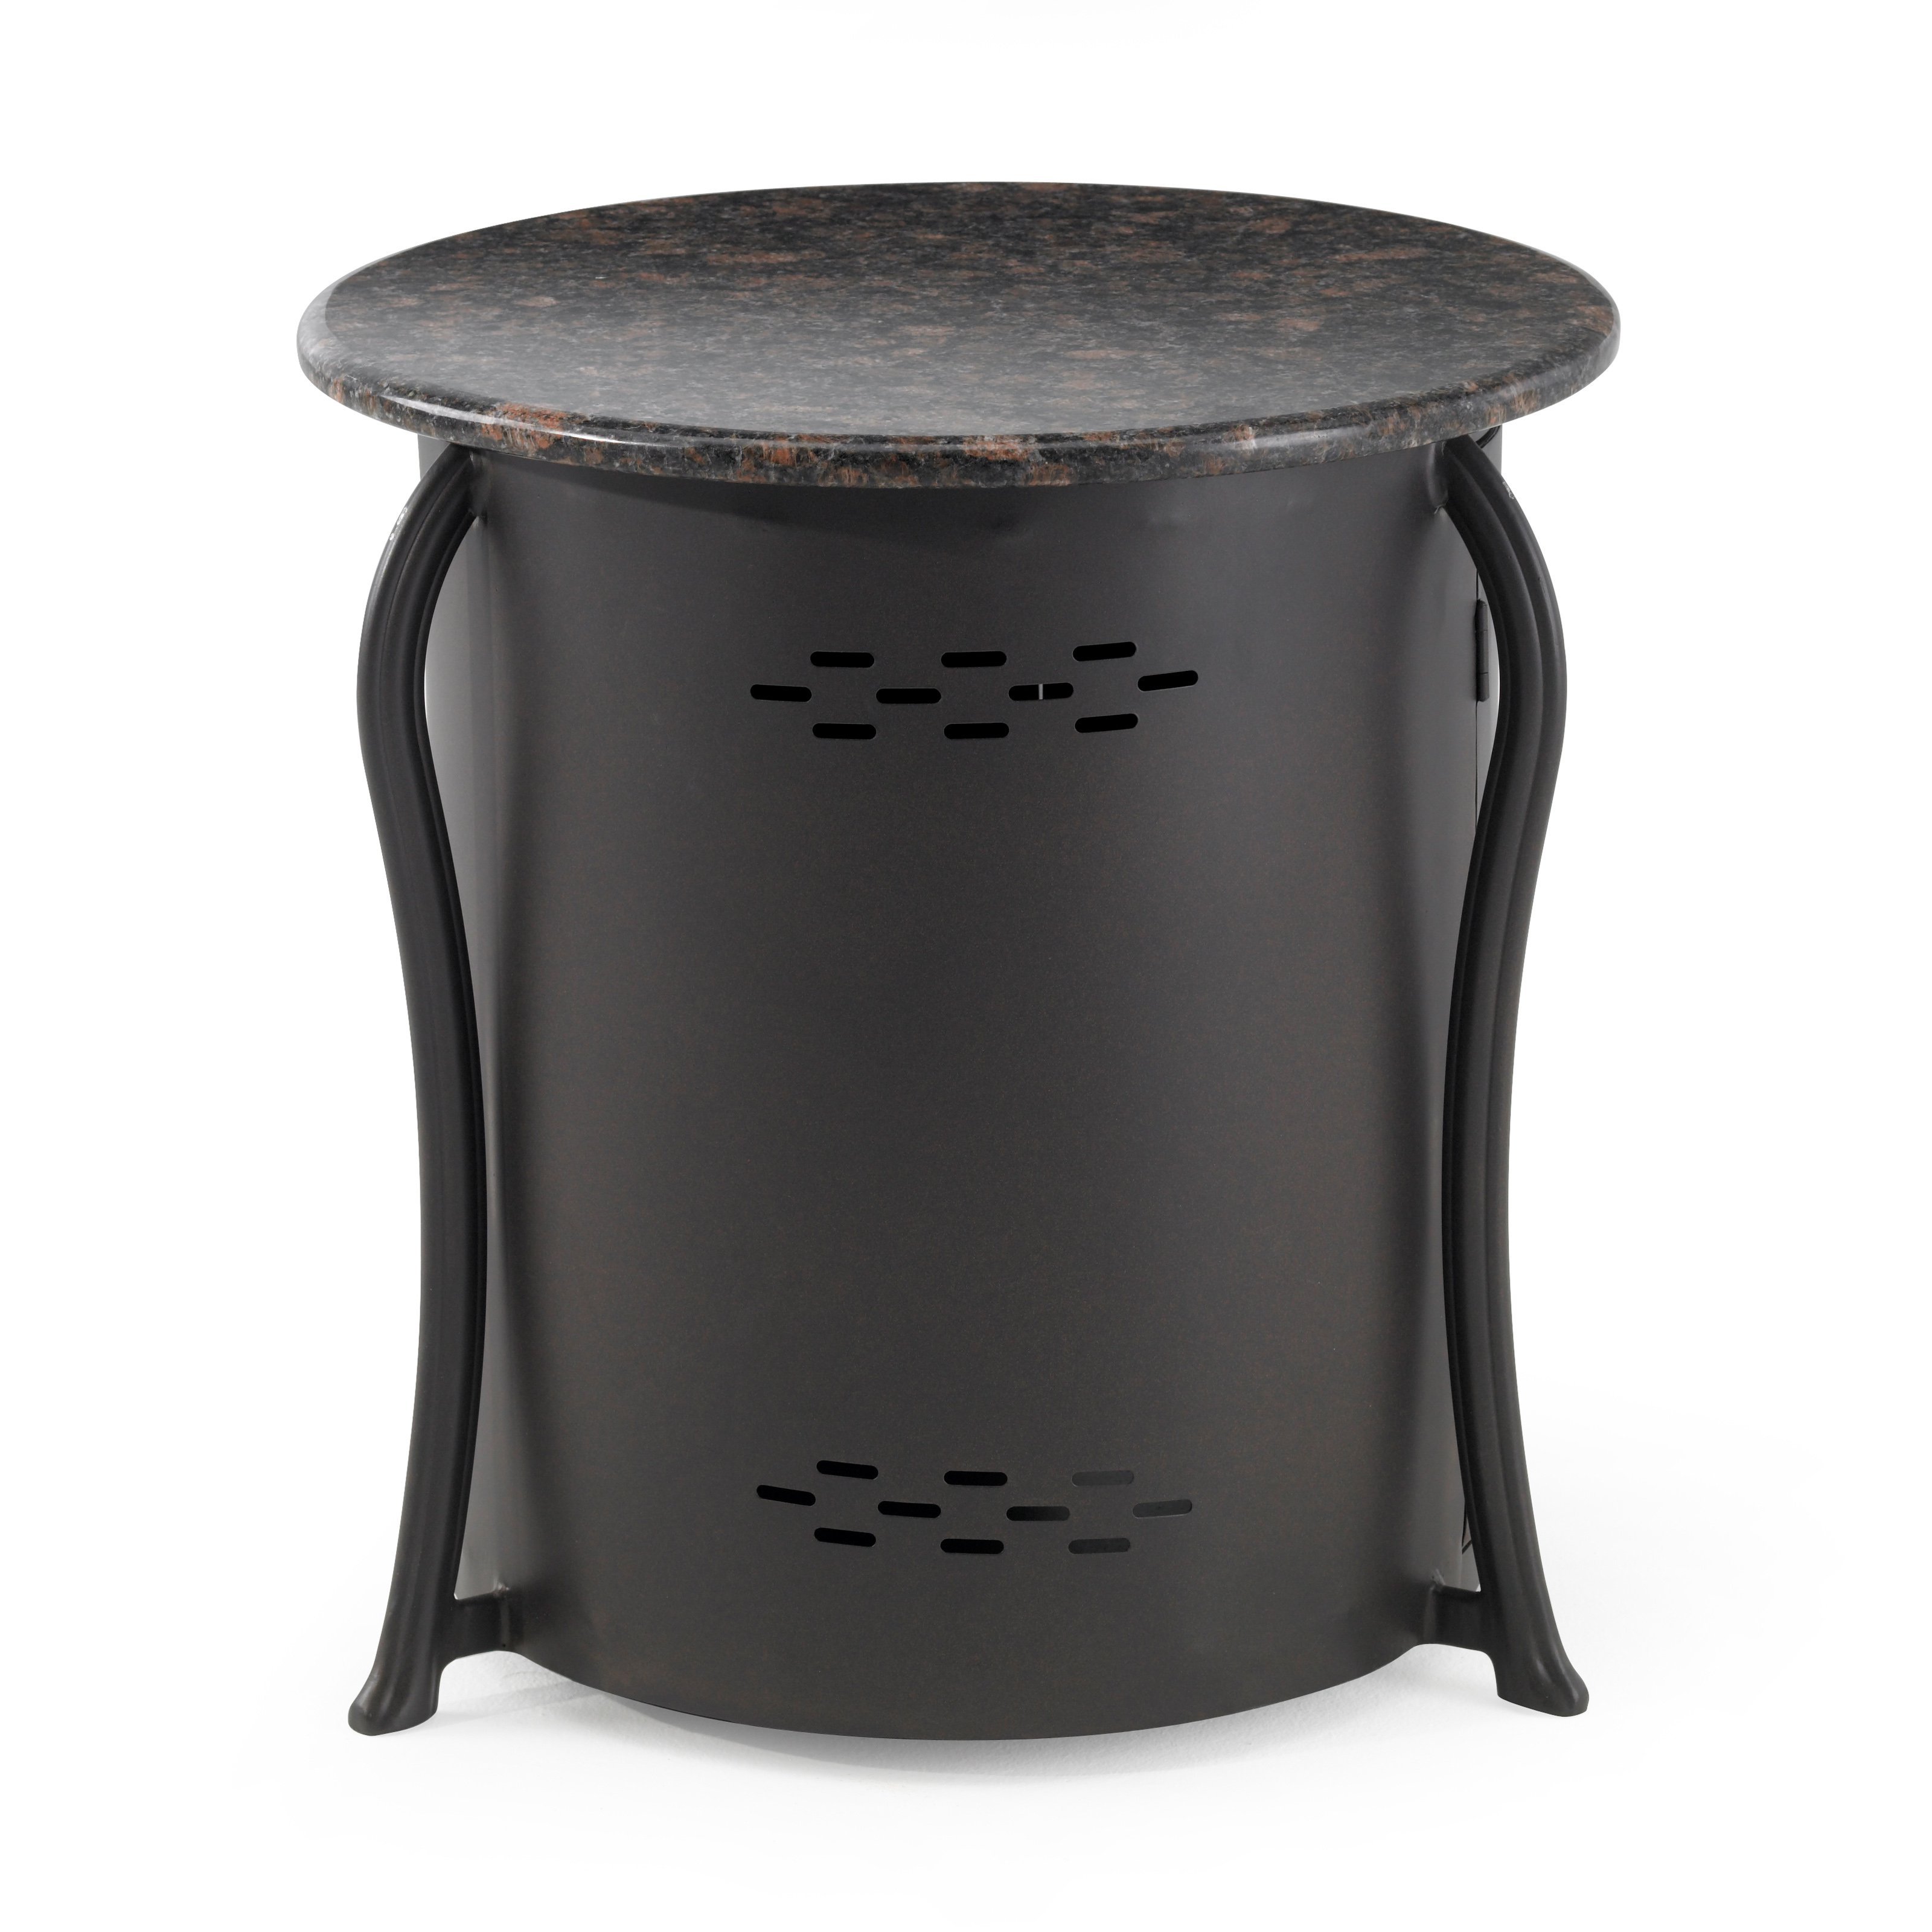 outdoor greatroom propane tank cover and side table with granite top unique foyer tables gold white antique drop leaf value pin leg desk dining room chairs bar set grey patio